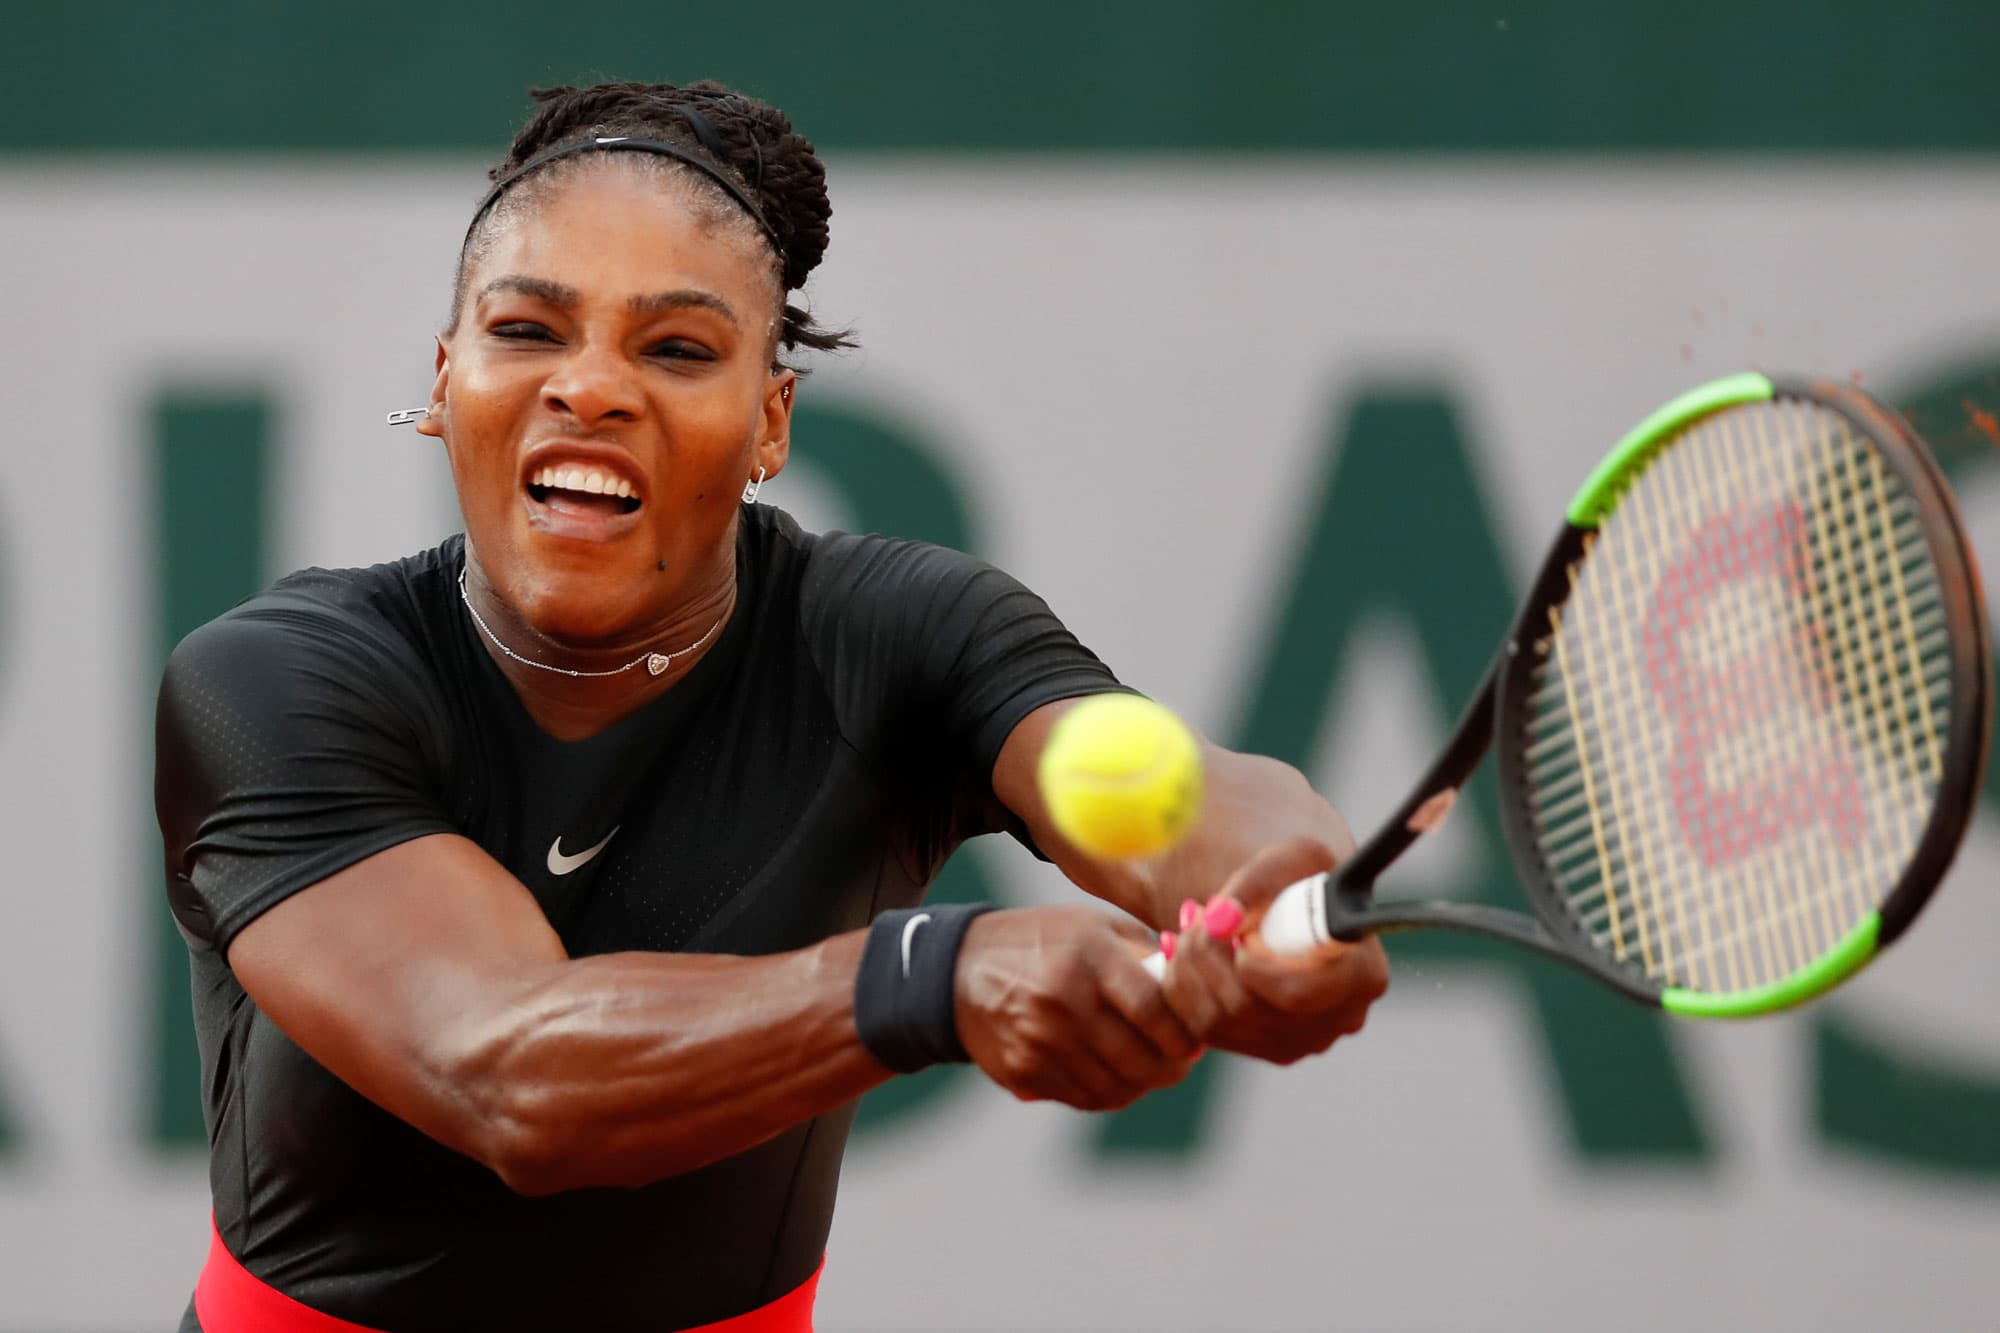 Serena Williams of the U.S. in action in the French Open, June 2, 2018.